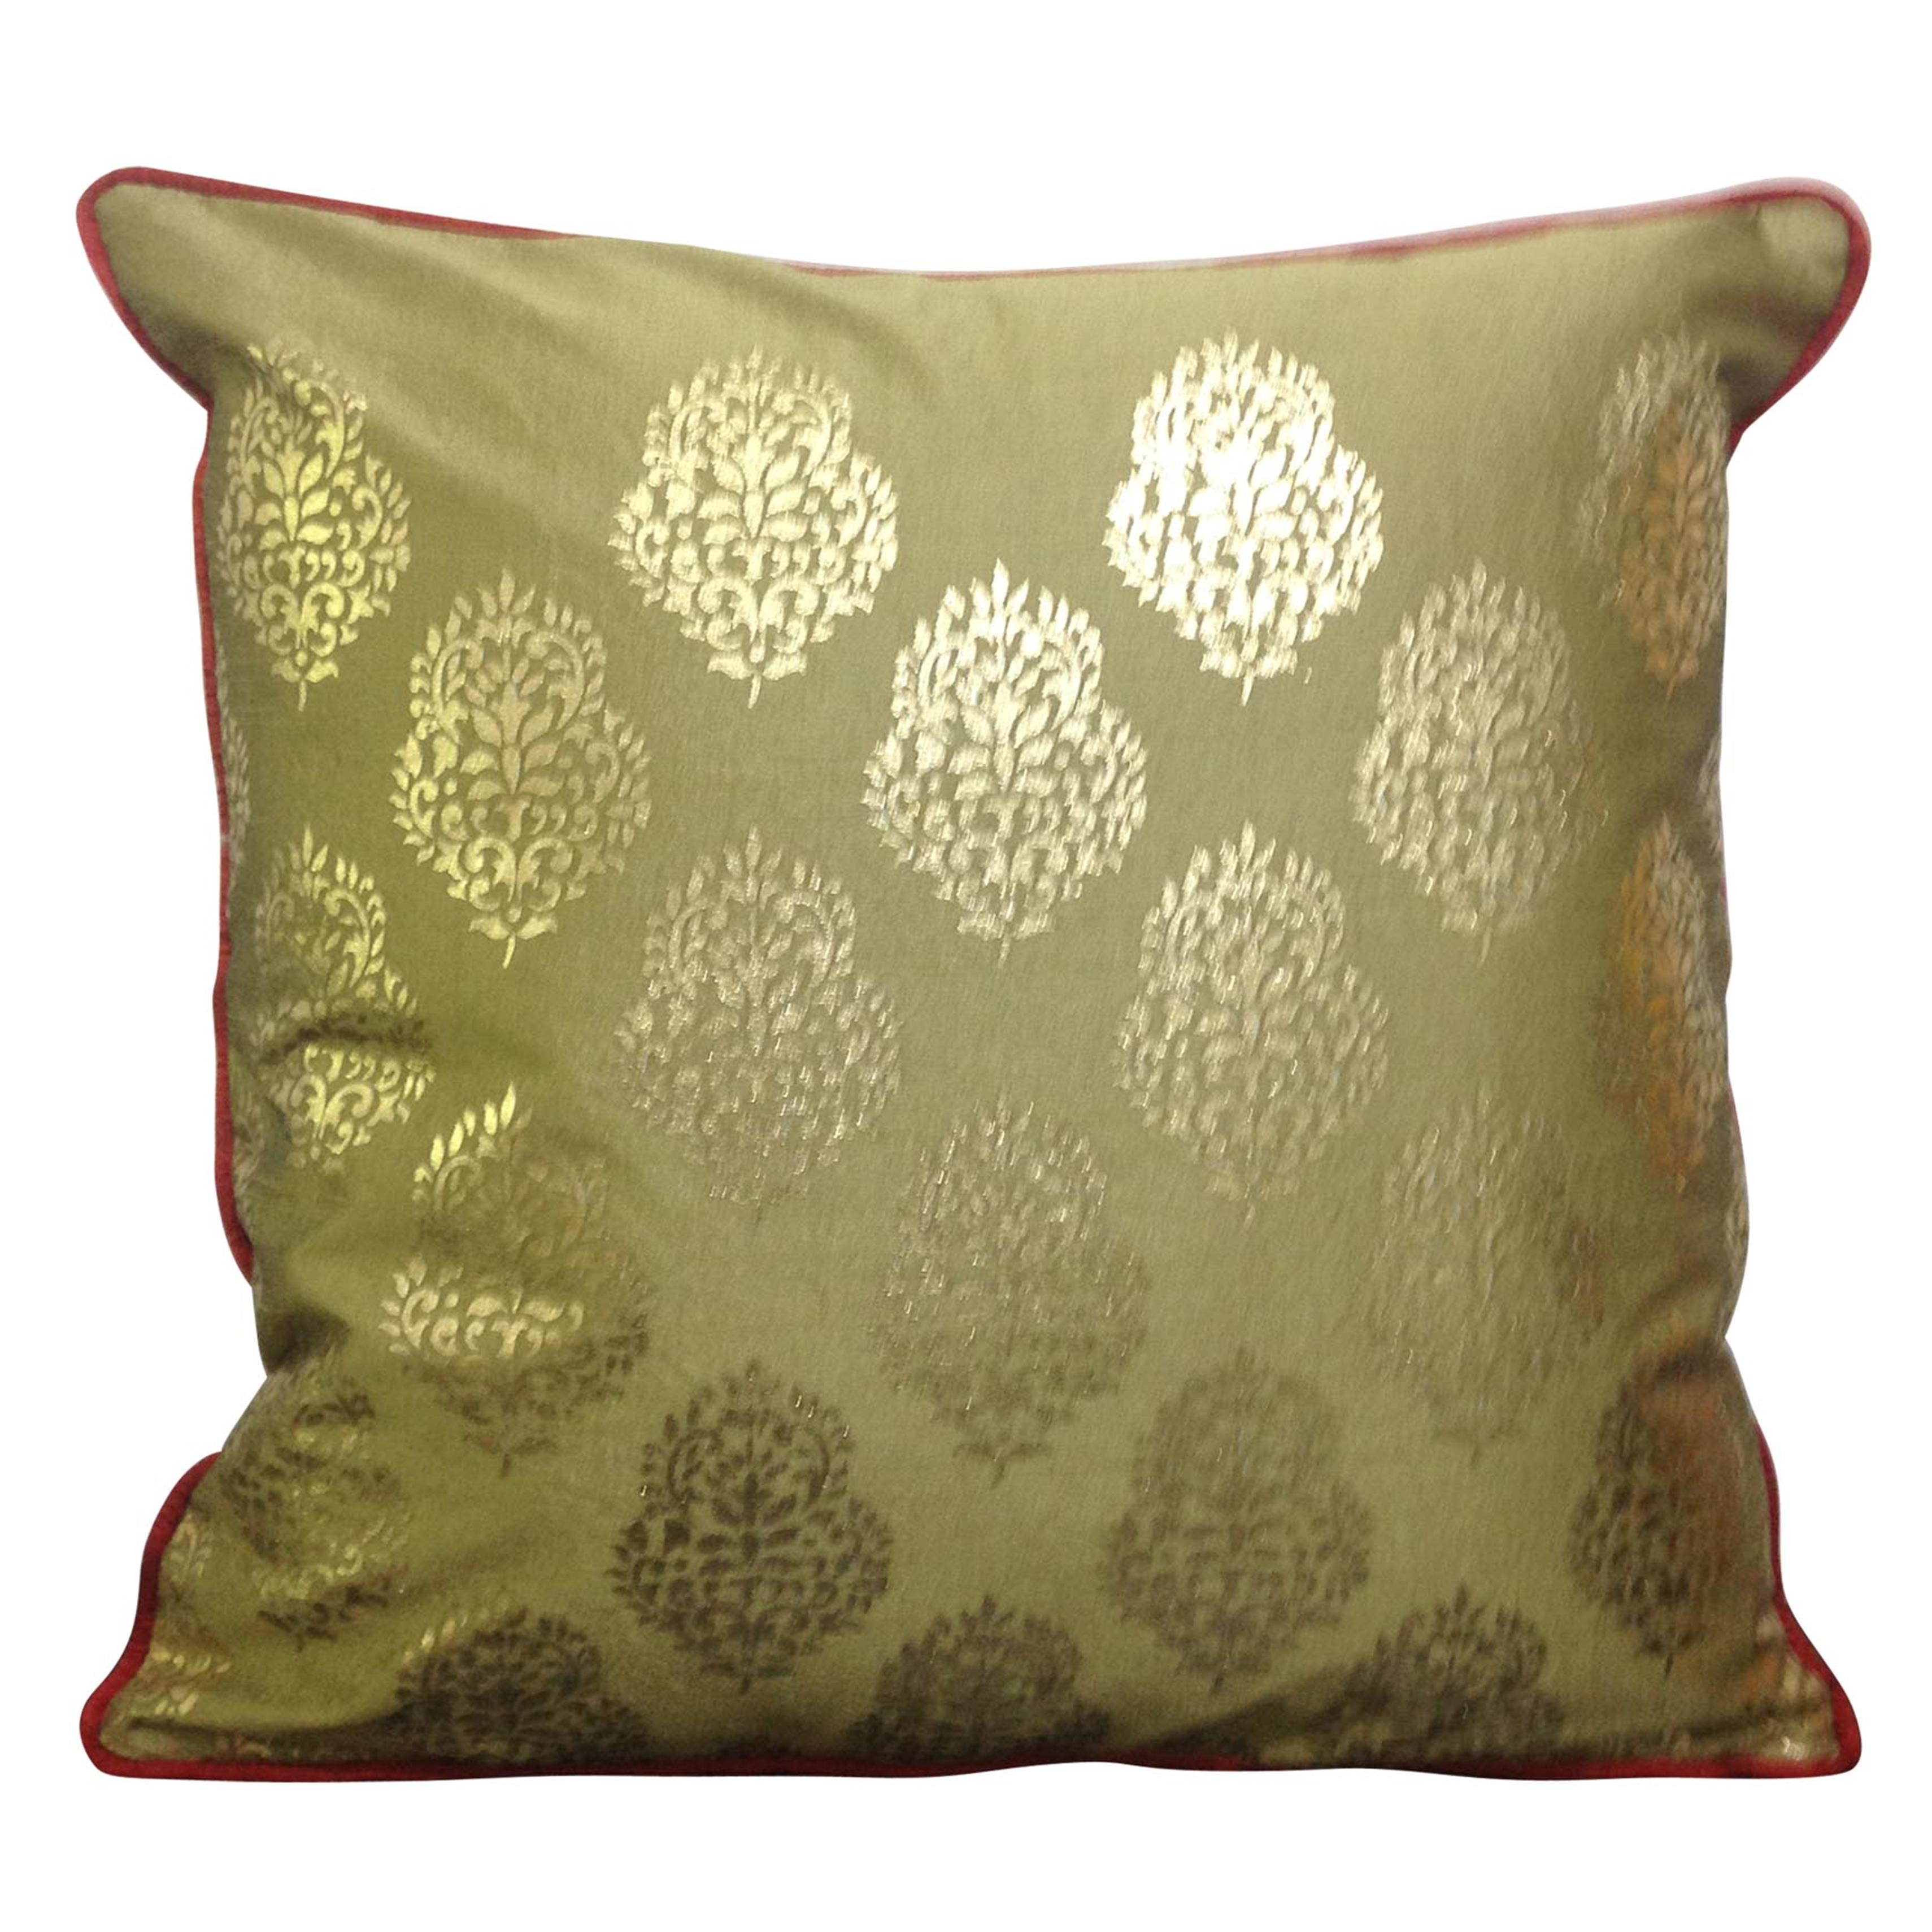 Double Sided Caramel Gold Motif Cushion Cover